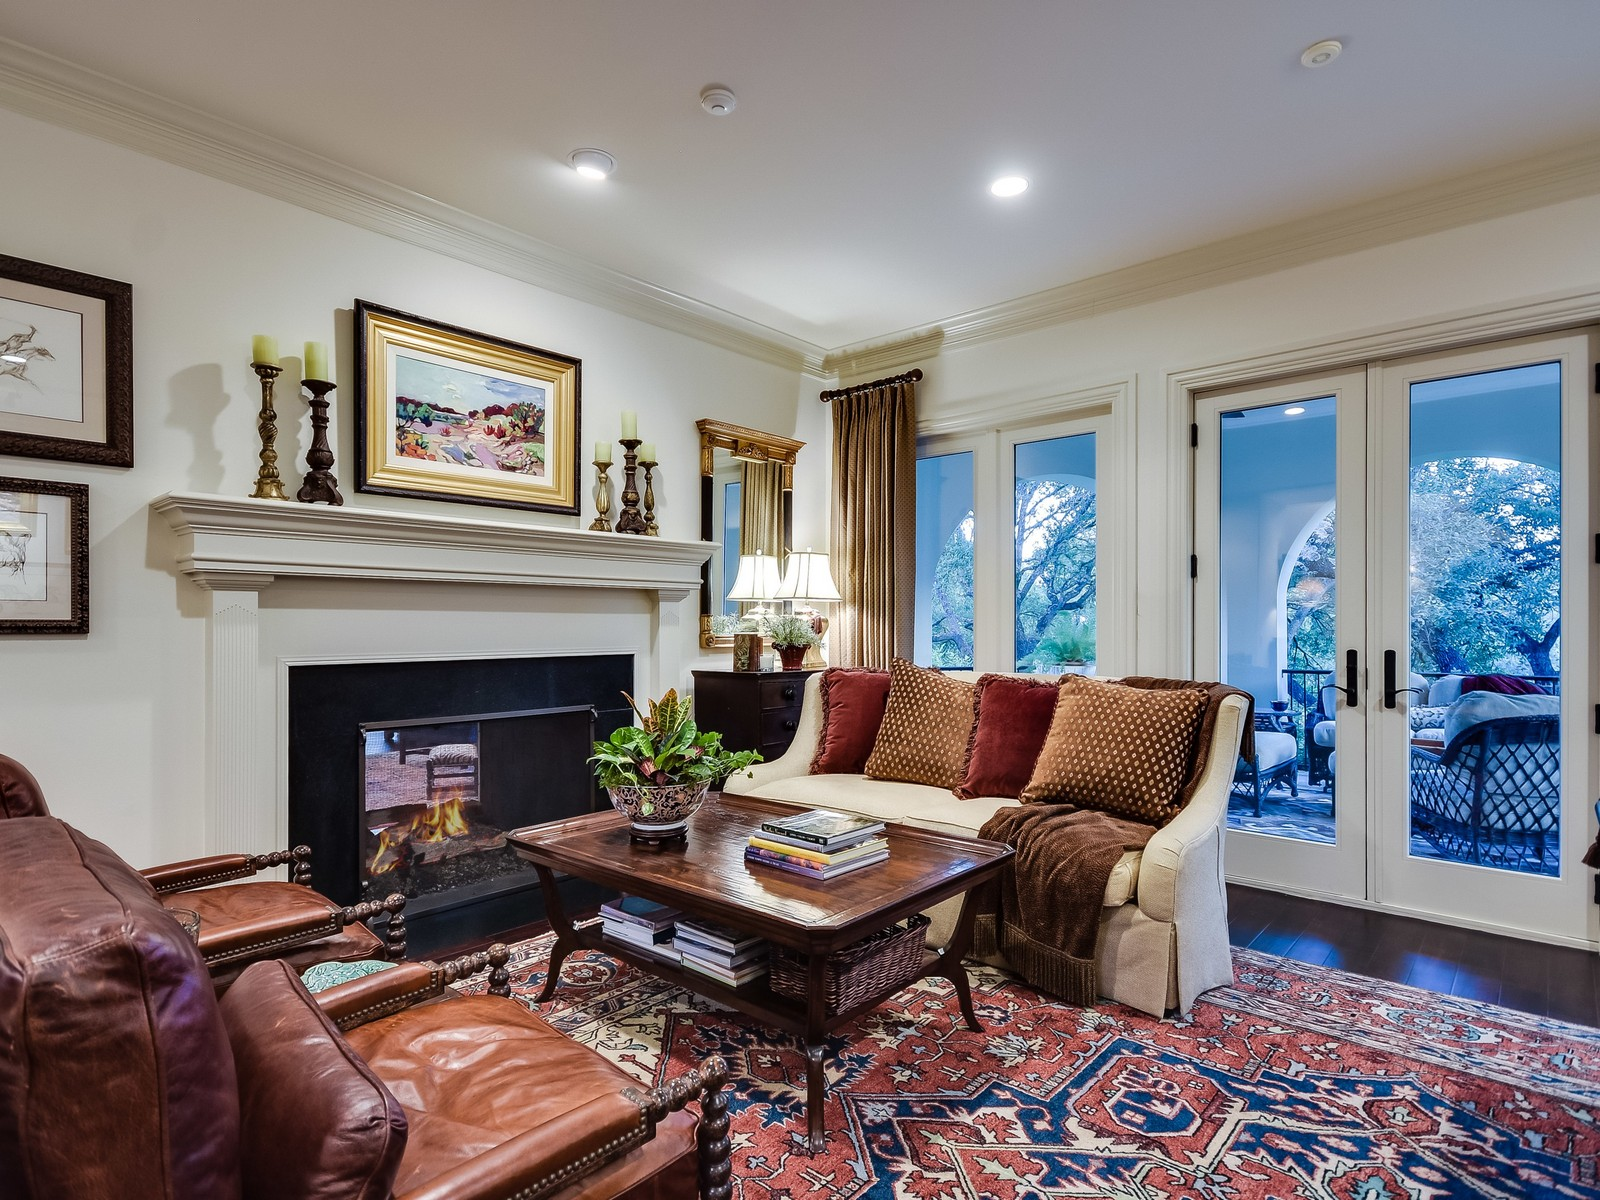 Additional photo for property listing at Amazing Home in The Ridge at Barton Creek 8307 Club Ridge Dr Austin, Texas 78735 United States